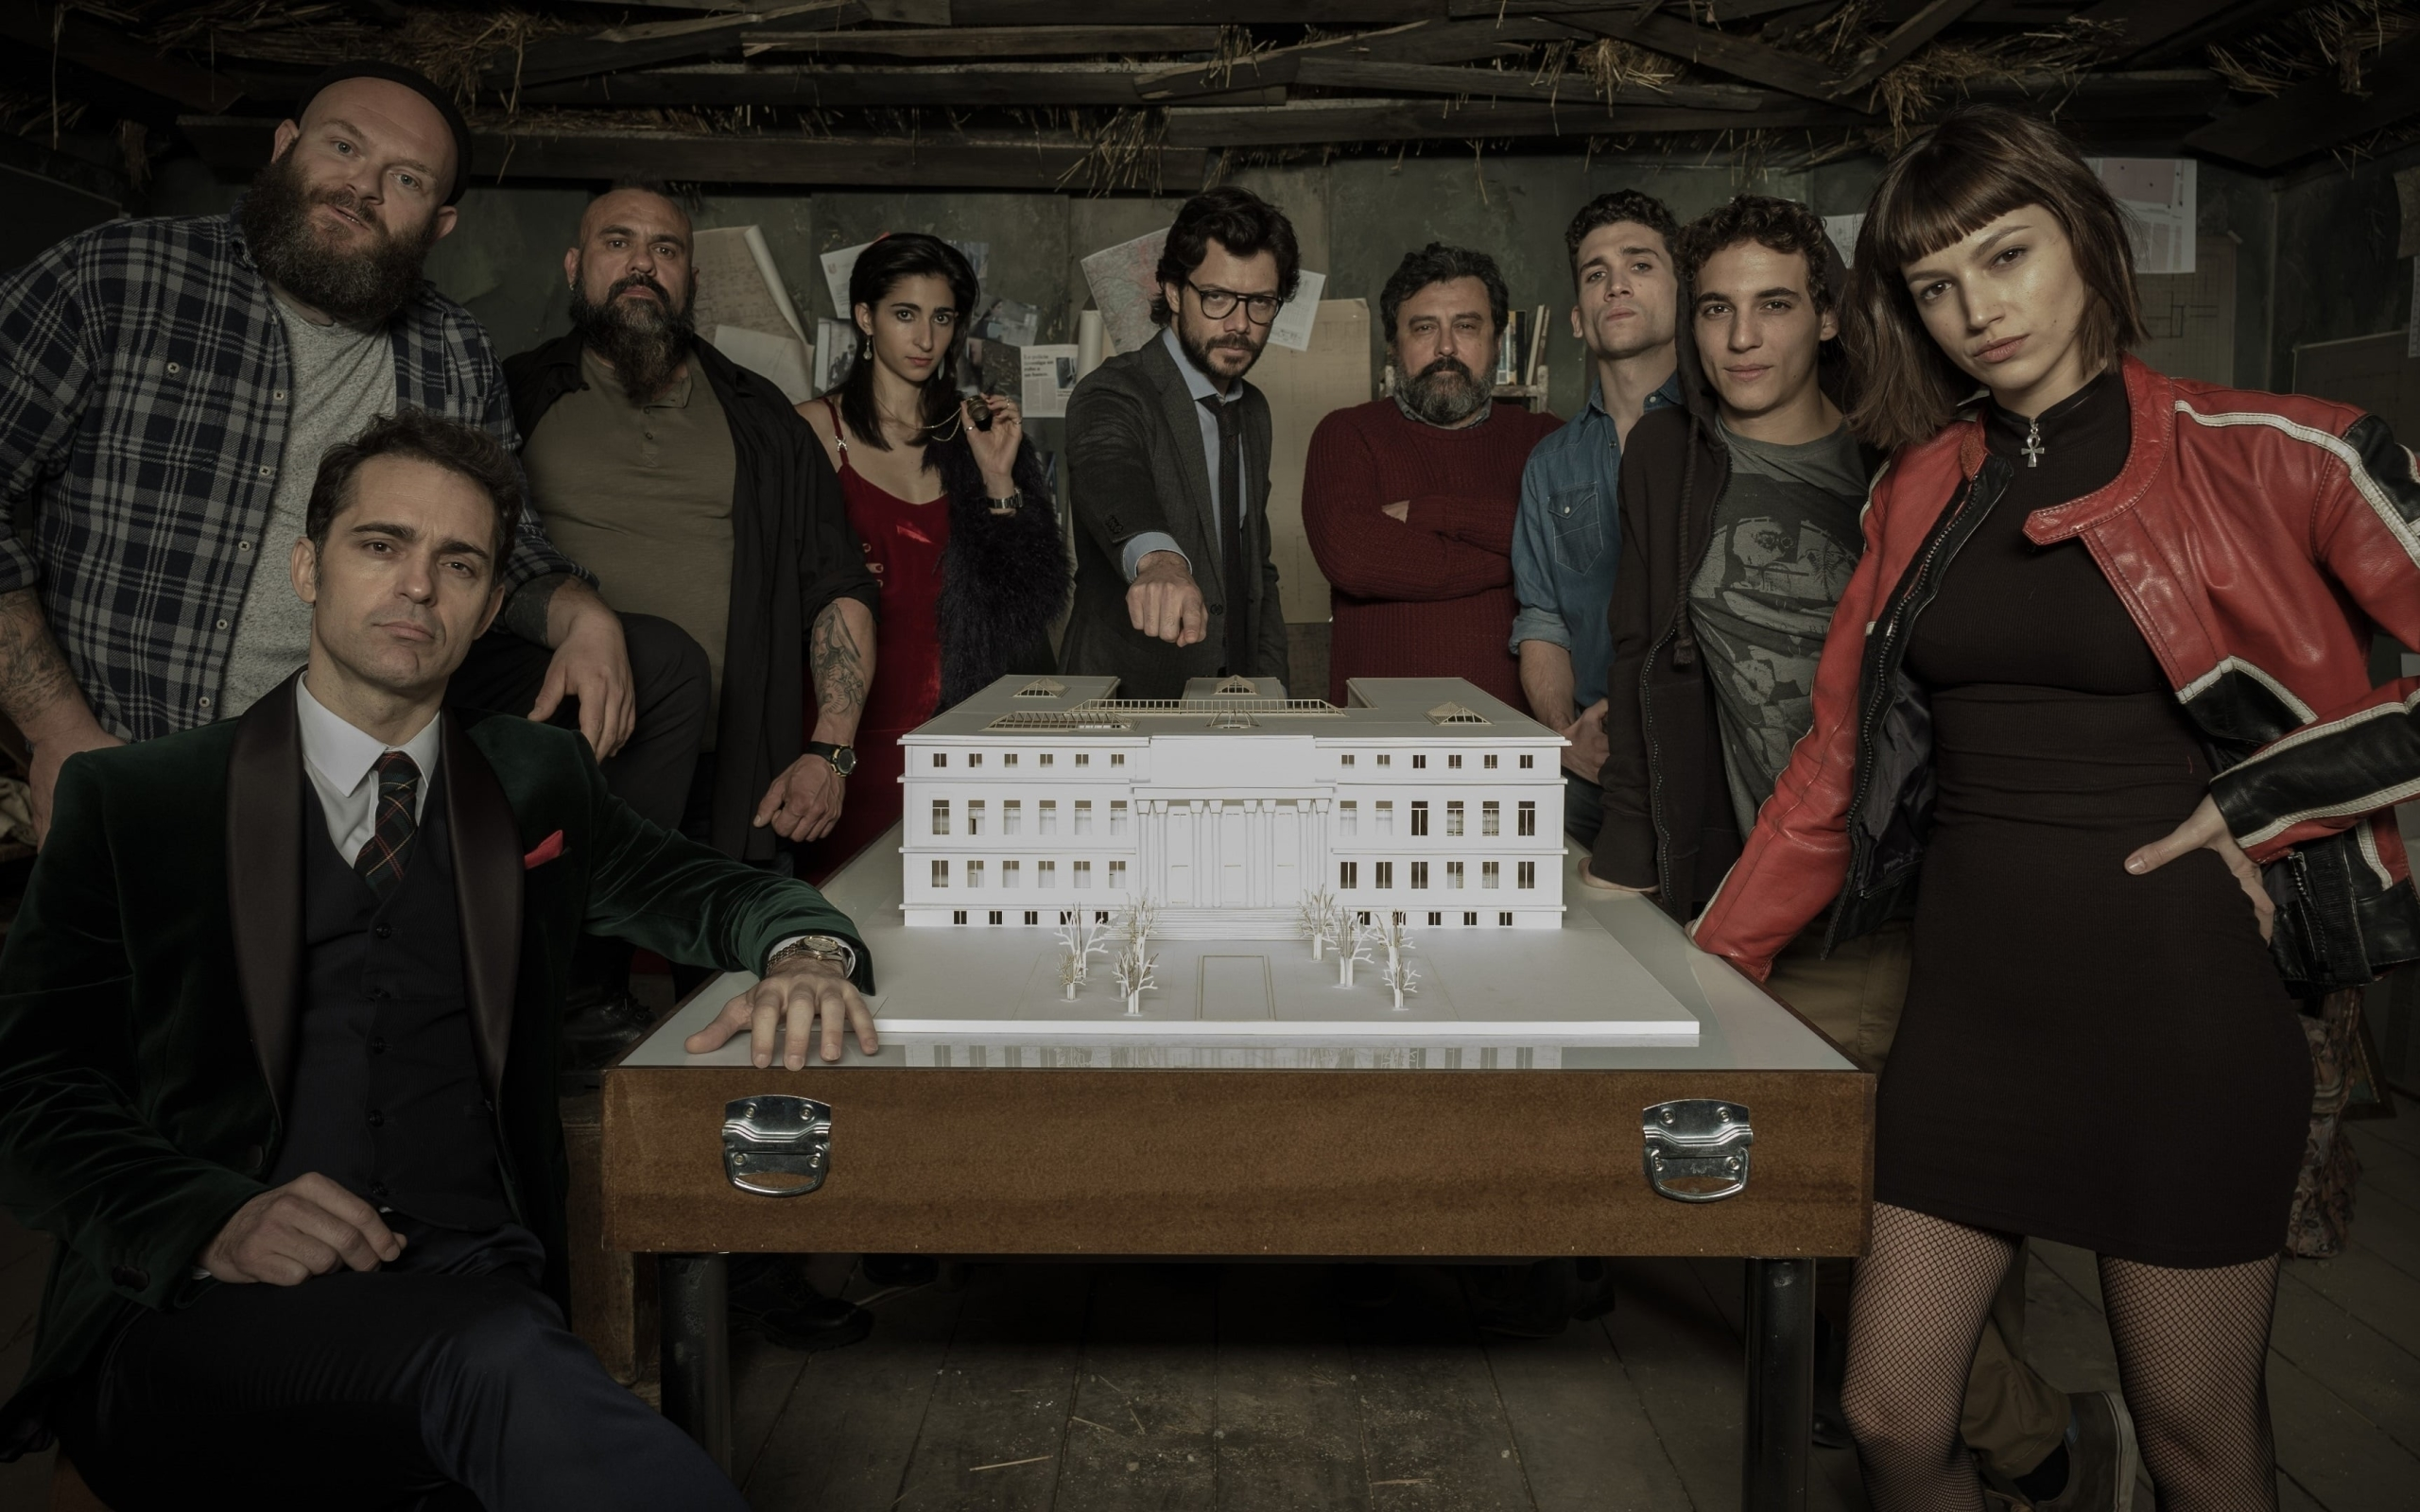 2560x1600 La Casa De Papel 2560x1600 Resolution Wallpaper Hd Tv